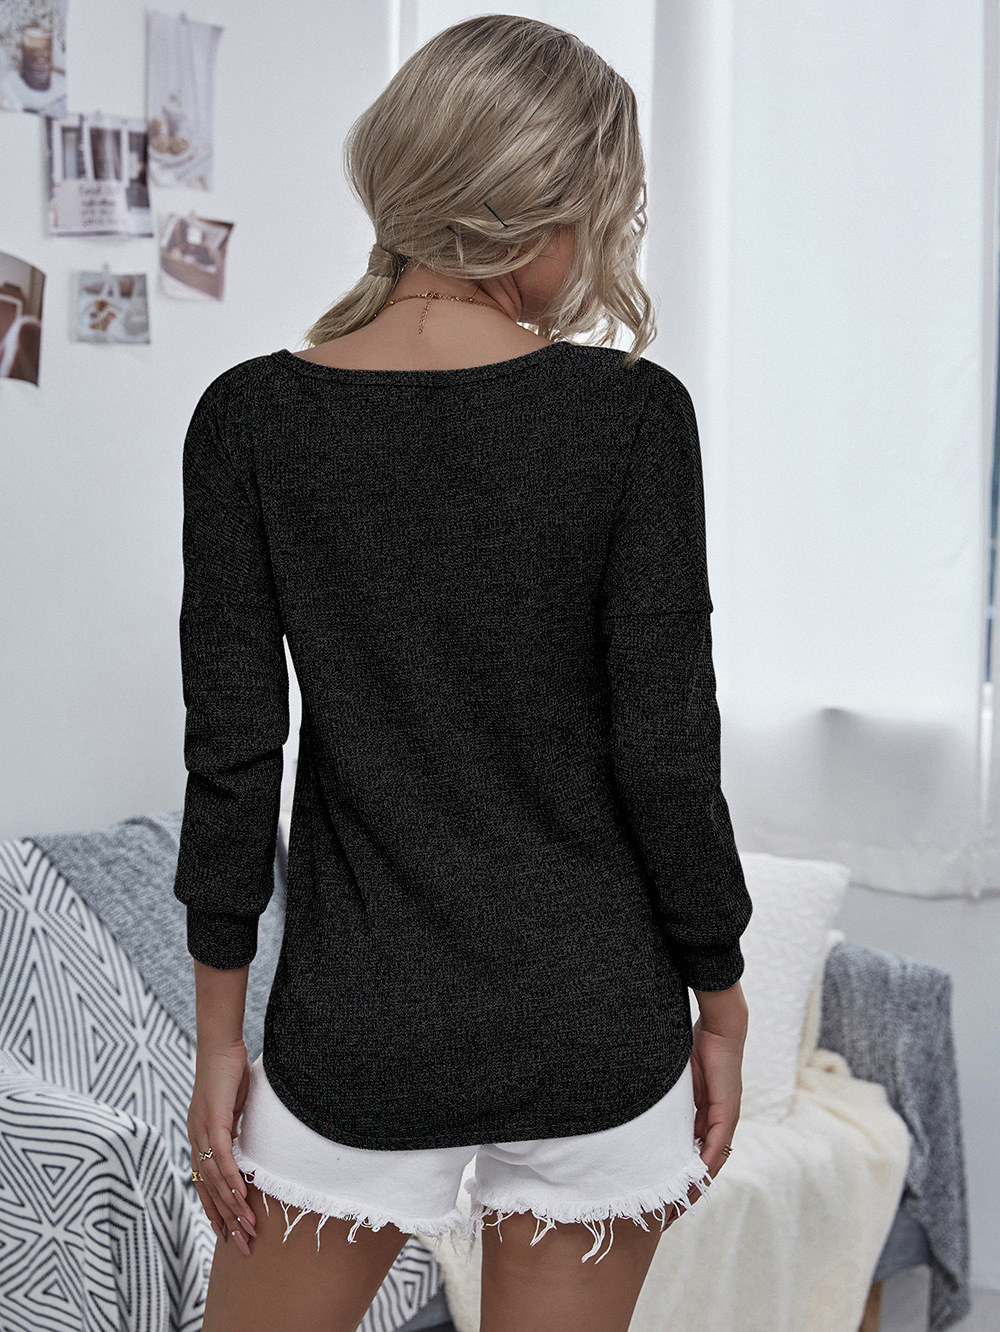 Knitwear Women's 2020 Fall/Winter New Long Sleeve Tops  NHDF66